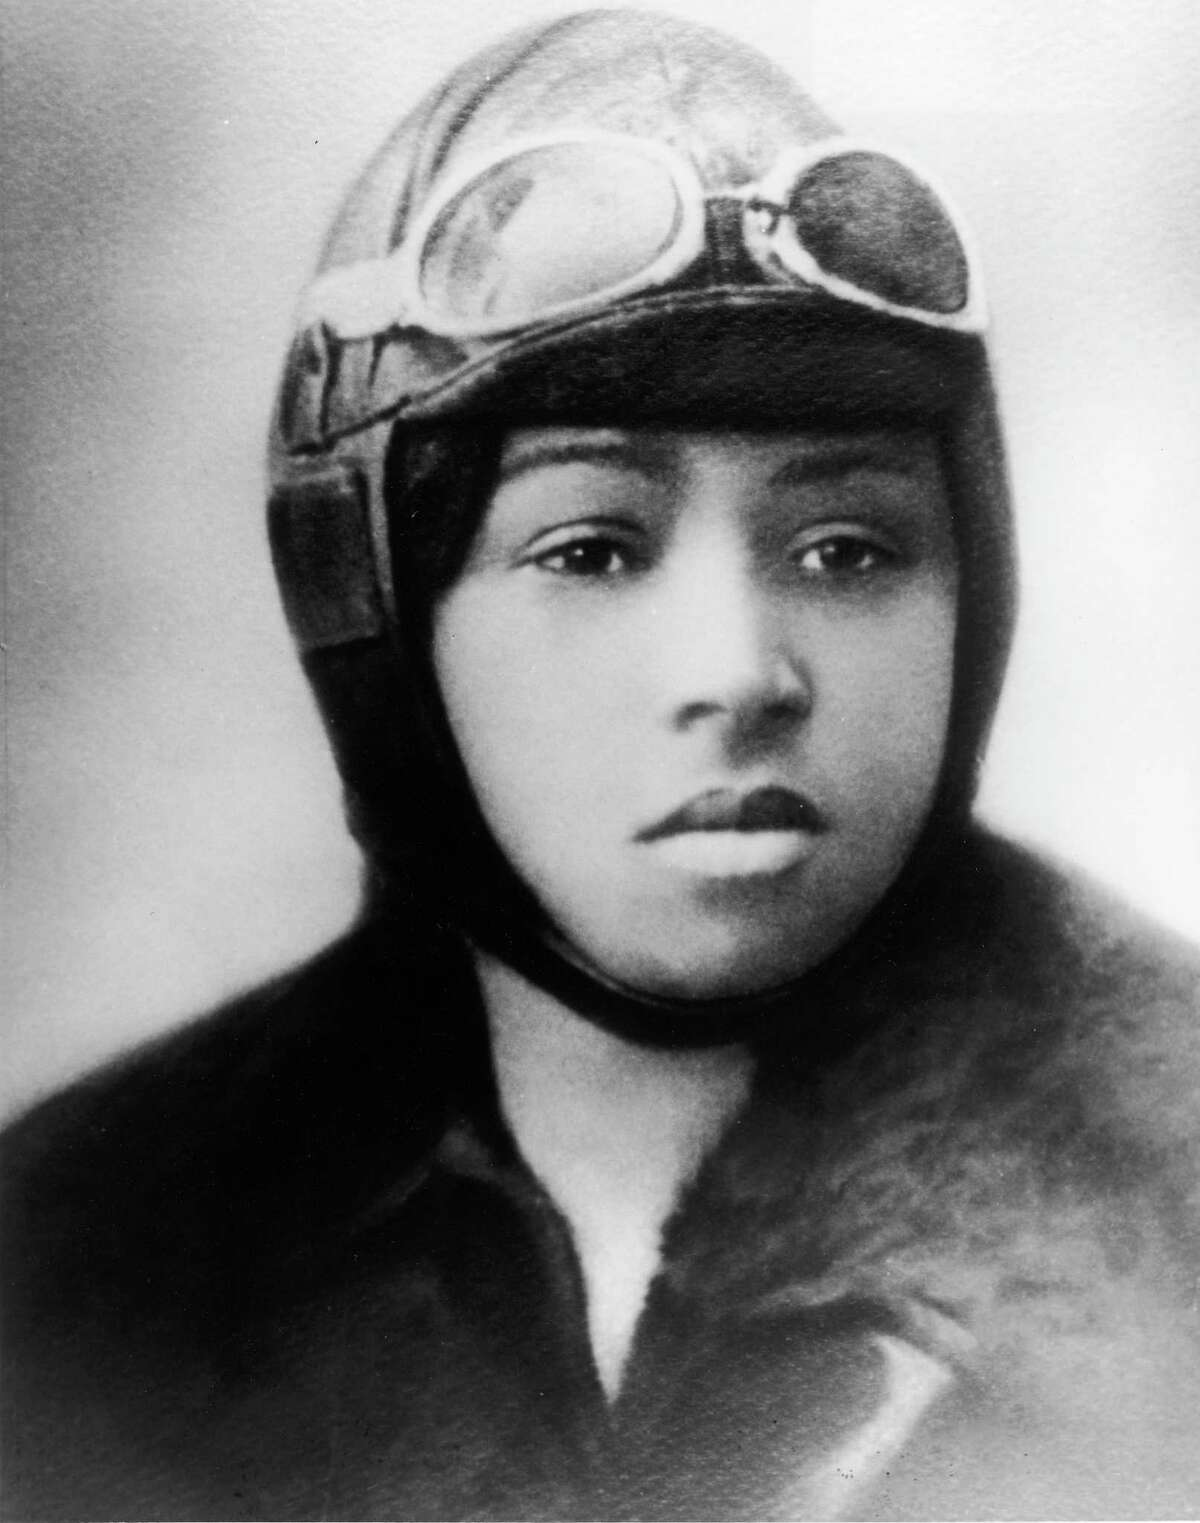 Bessie Coleman Born in 1892 in Atlanta, Texas, Bessie Coleman was the first Black woman and first Native American woman to earn a pilot's license and an overall pioneer in aviation. Because U.S. aviation schools didn't grant women or people of color pilot's licenses, she learned French, then studied abroad in France where she earned her license before eventually returning to the states.